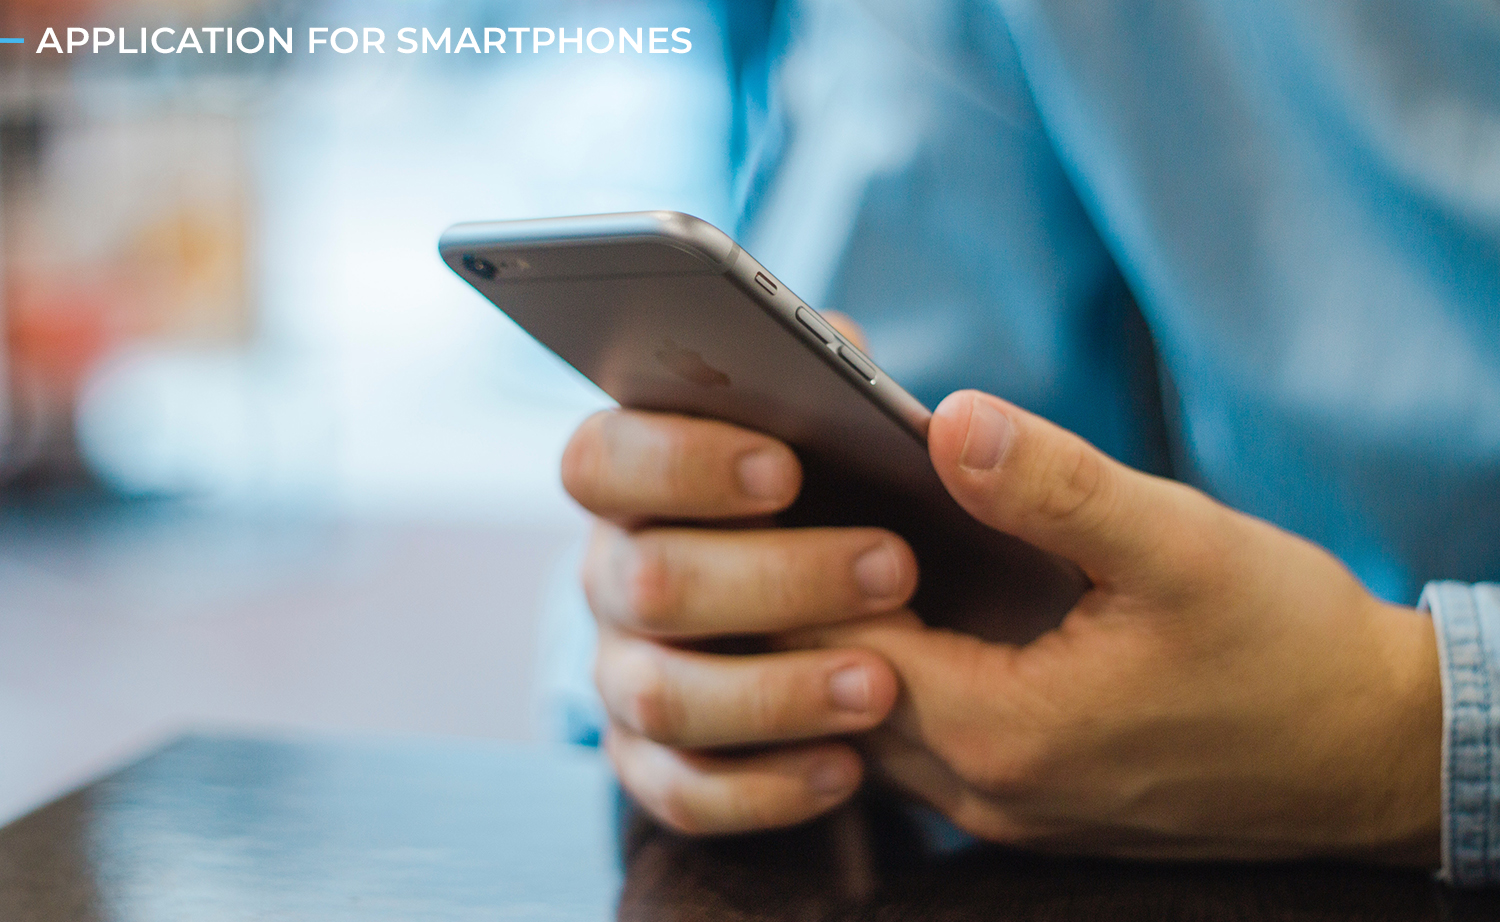 create an application for smartphones